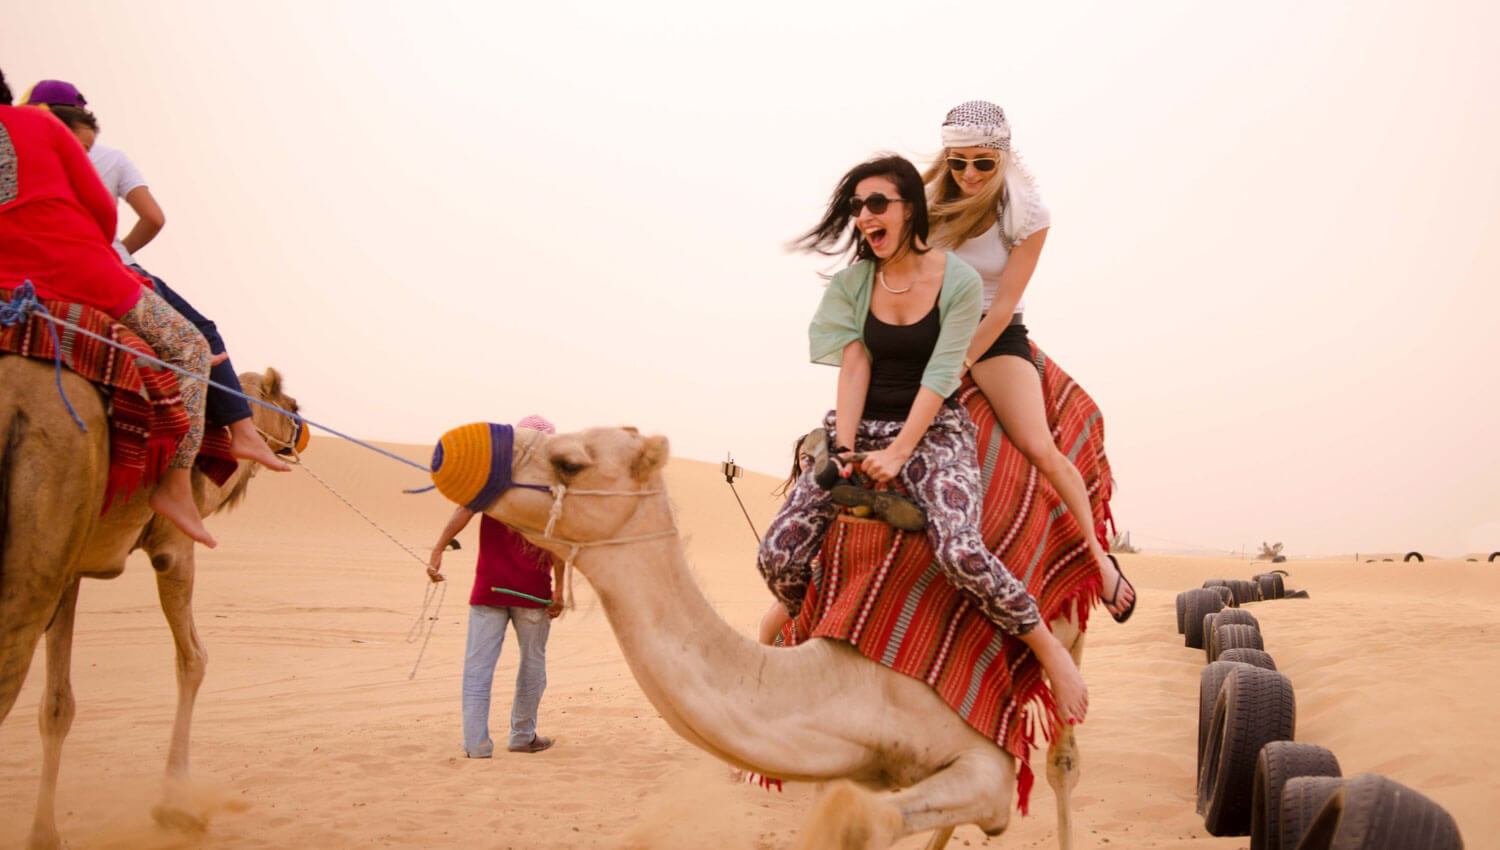 Fun in Desert Safaris in Dubai